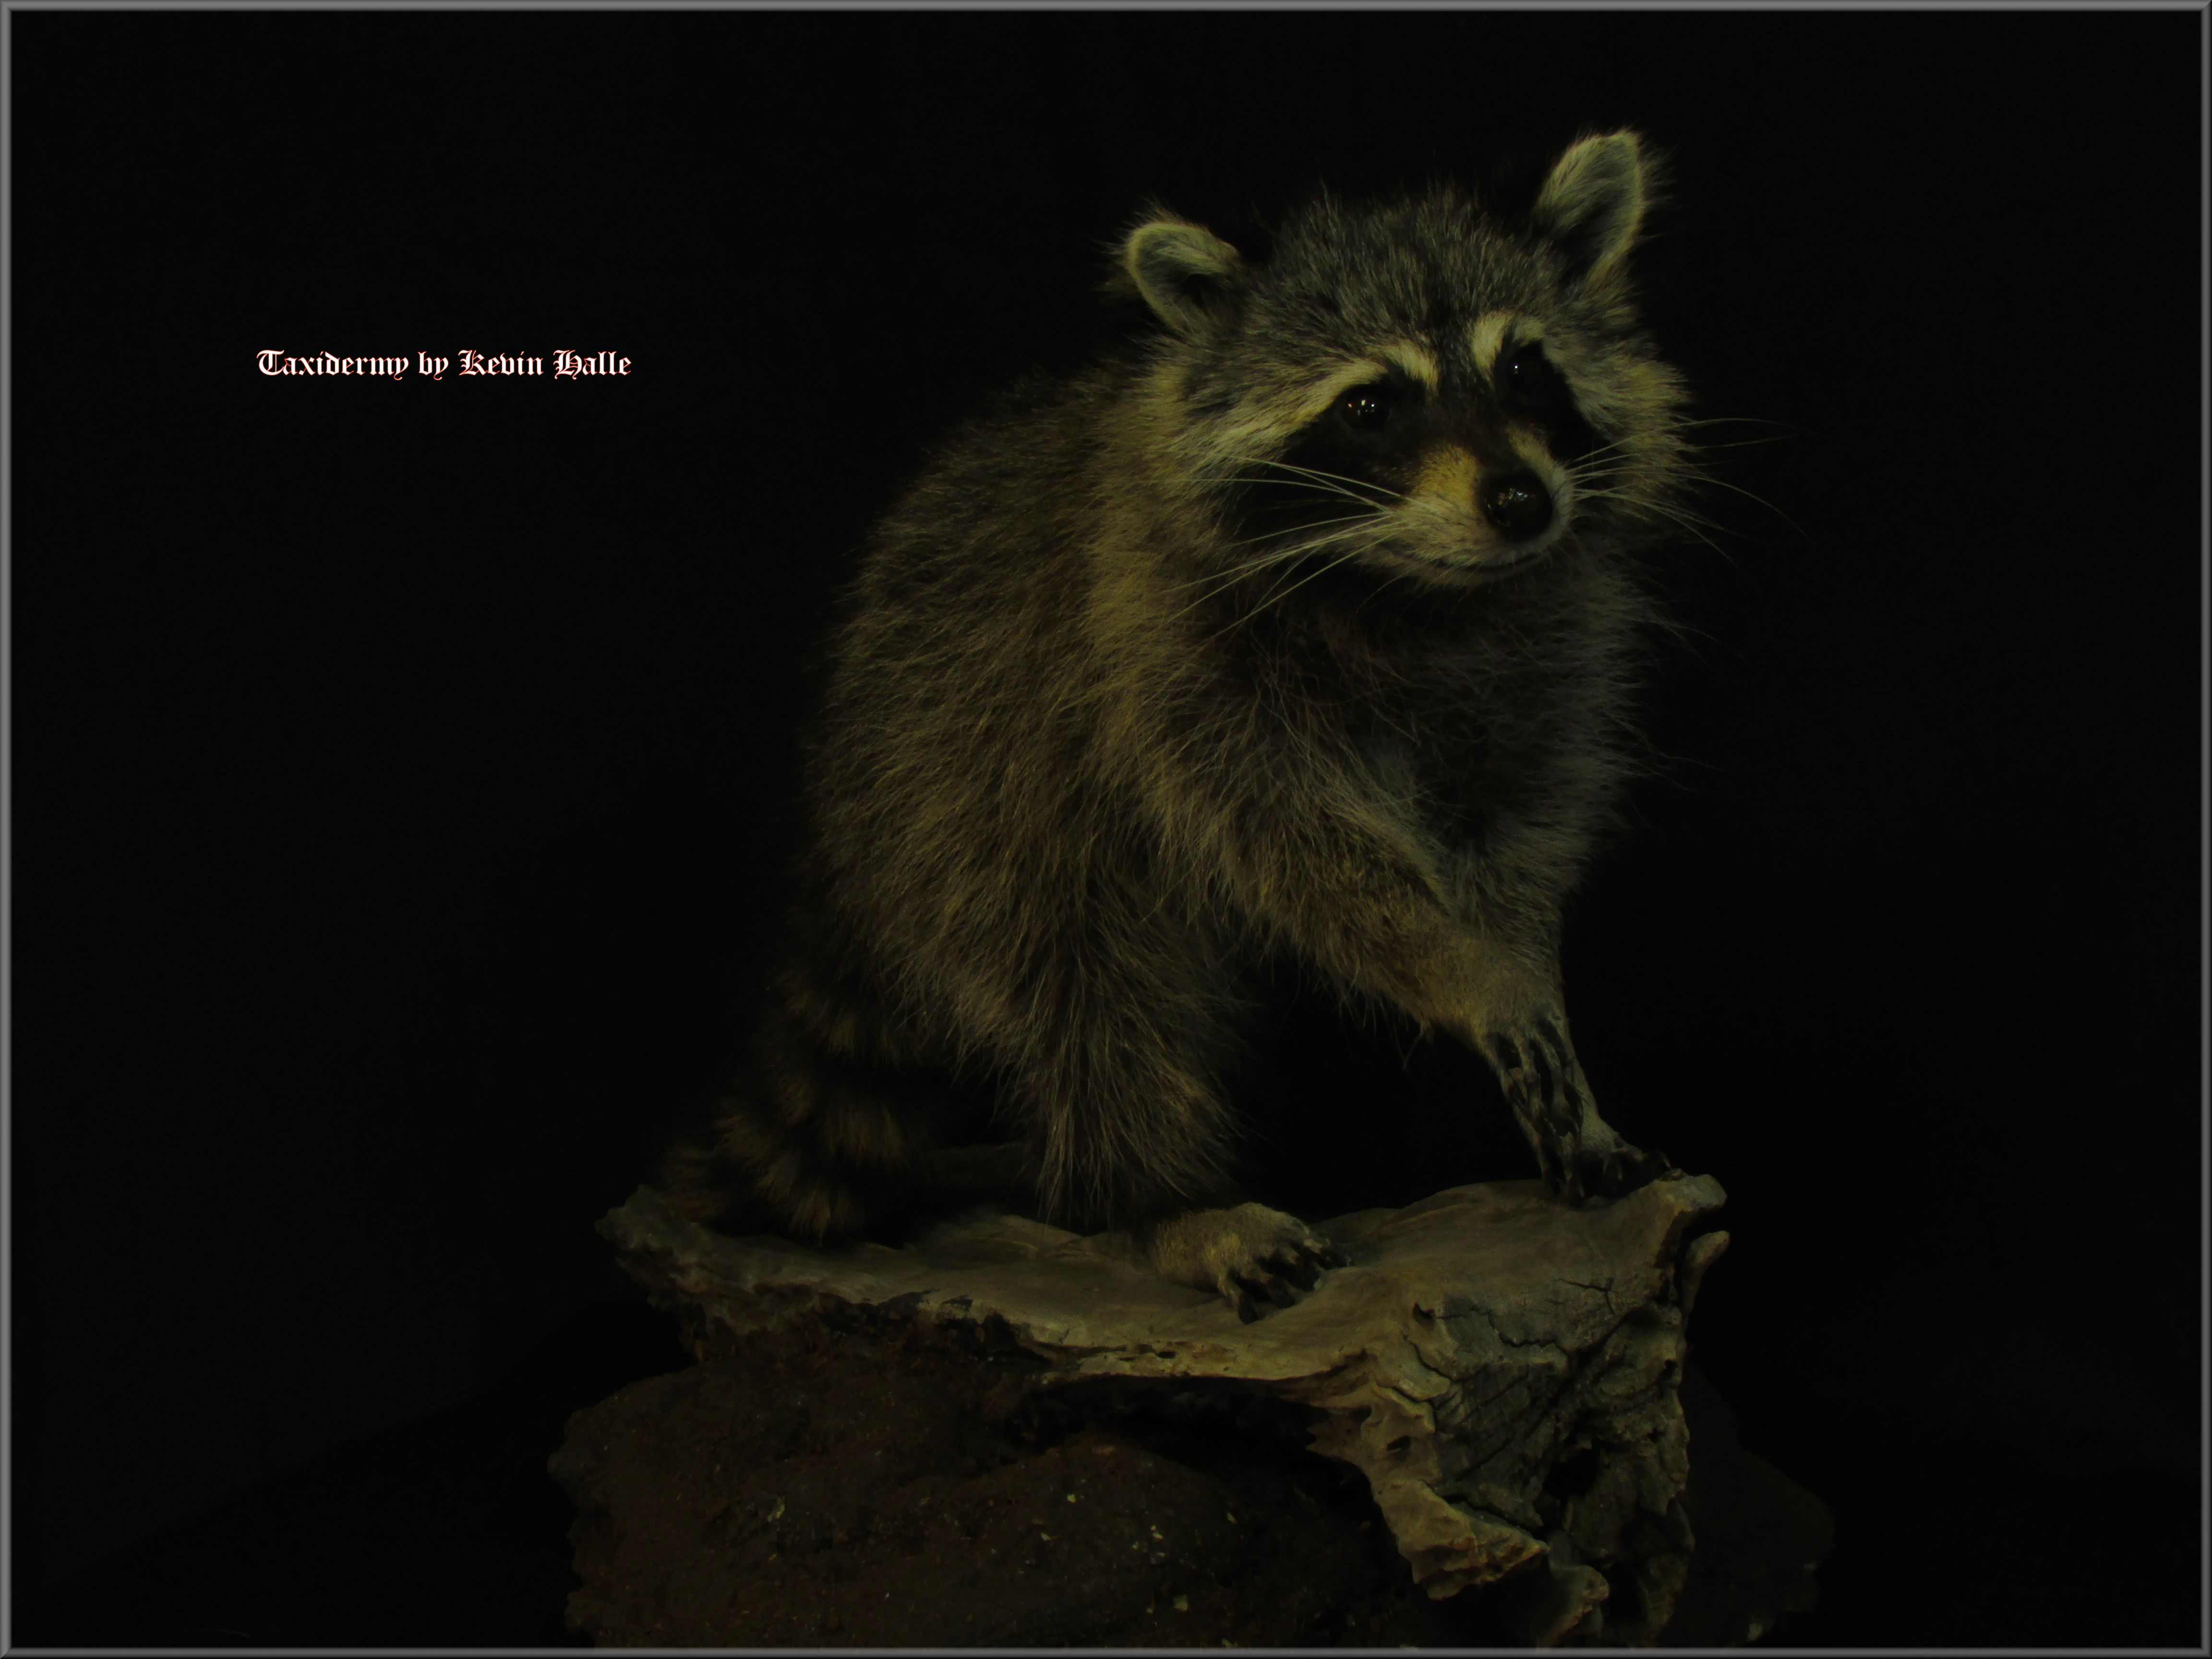 lifesize raccon taxidermy